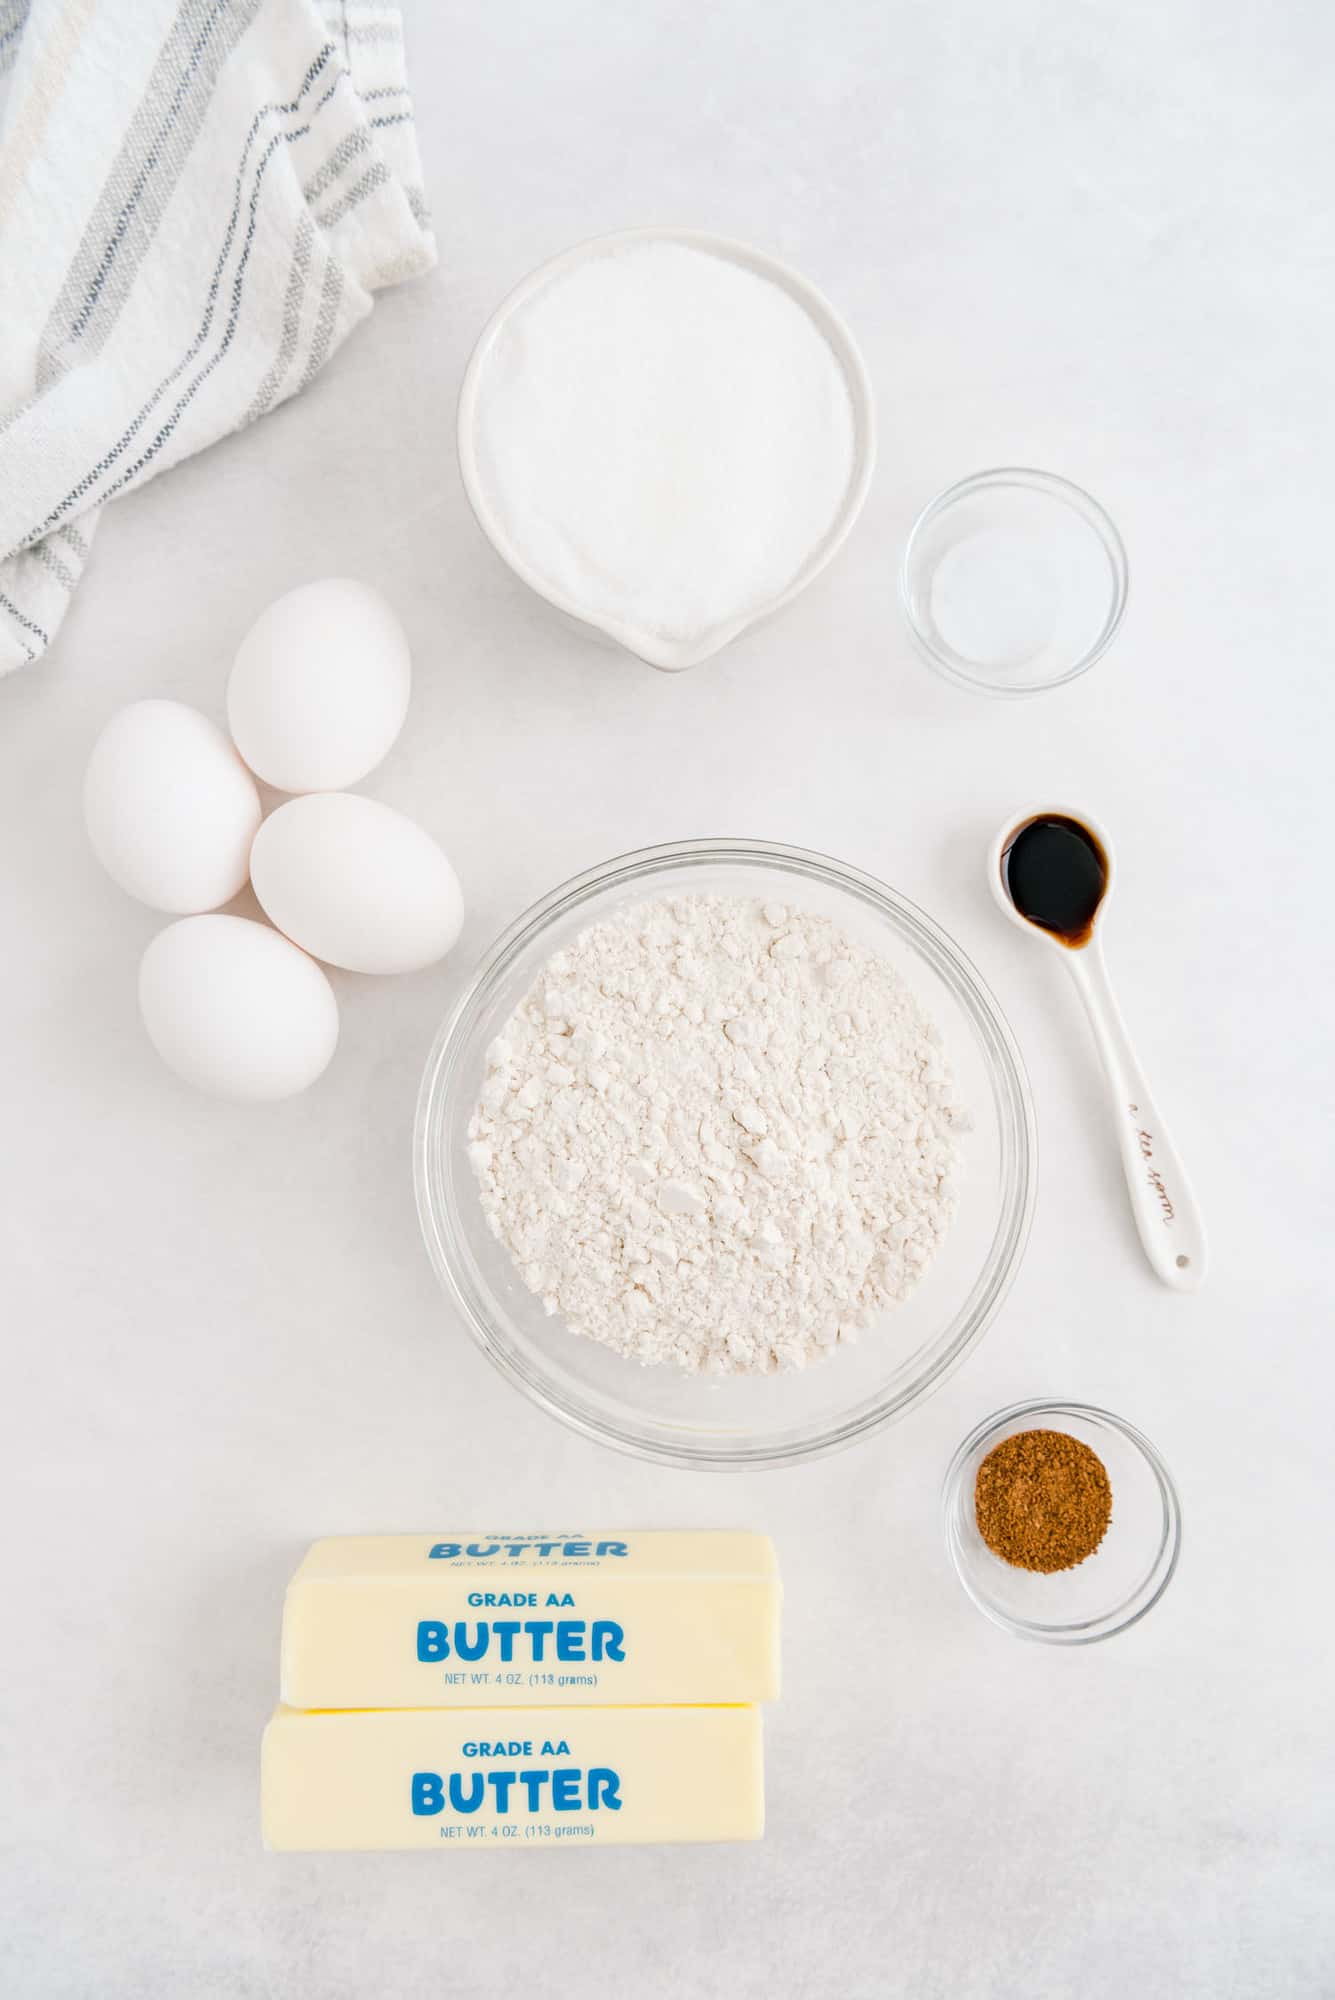 Overhead view of ingredients: butter, eggs, flour, sugar, vanilla, and nutmeg.